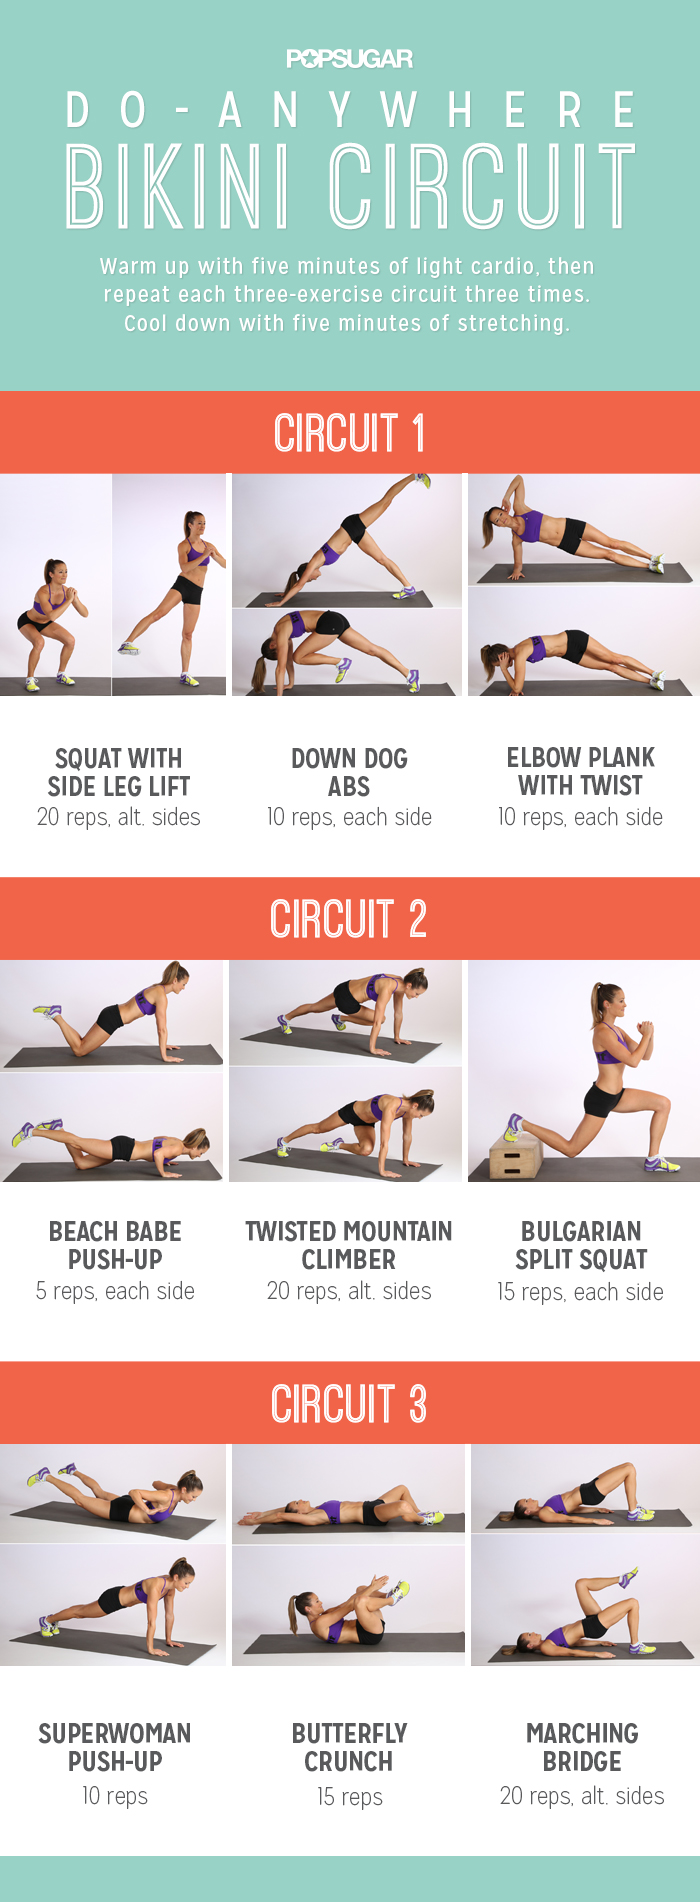 image about Printable Workout Routine identify Ultimate 5 No cost Printable Exercise routine Exercise routines (no tools expected